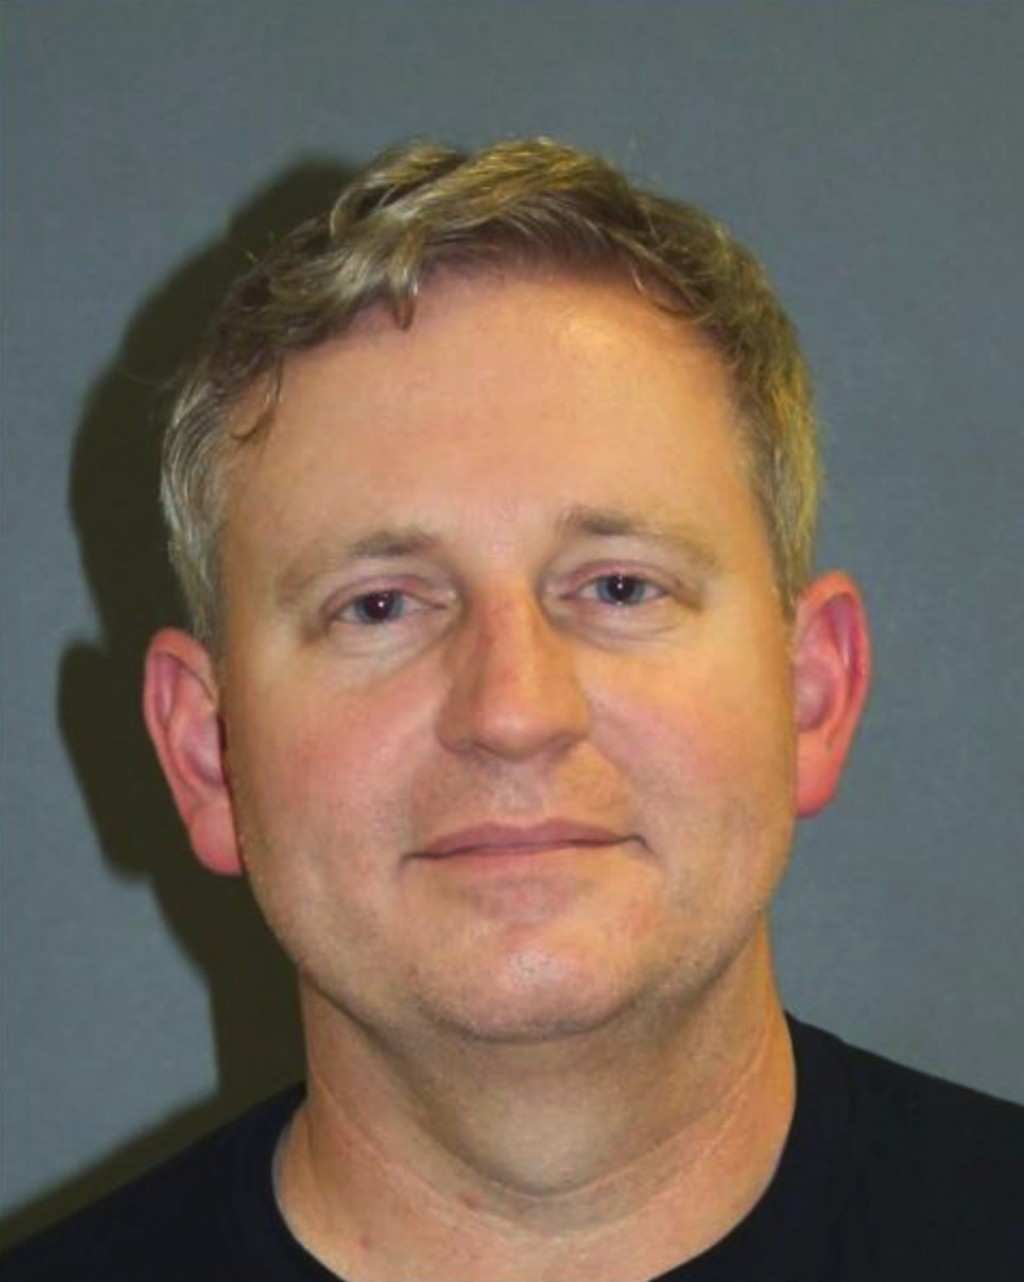 This undated photo provided by the Orange County District Attorney shows Roger Alan Giese. Giese, a former vocal coach accused of molesting a 13-year-...